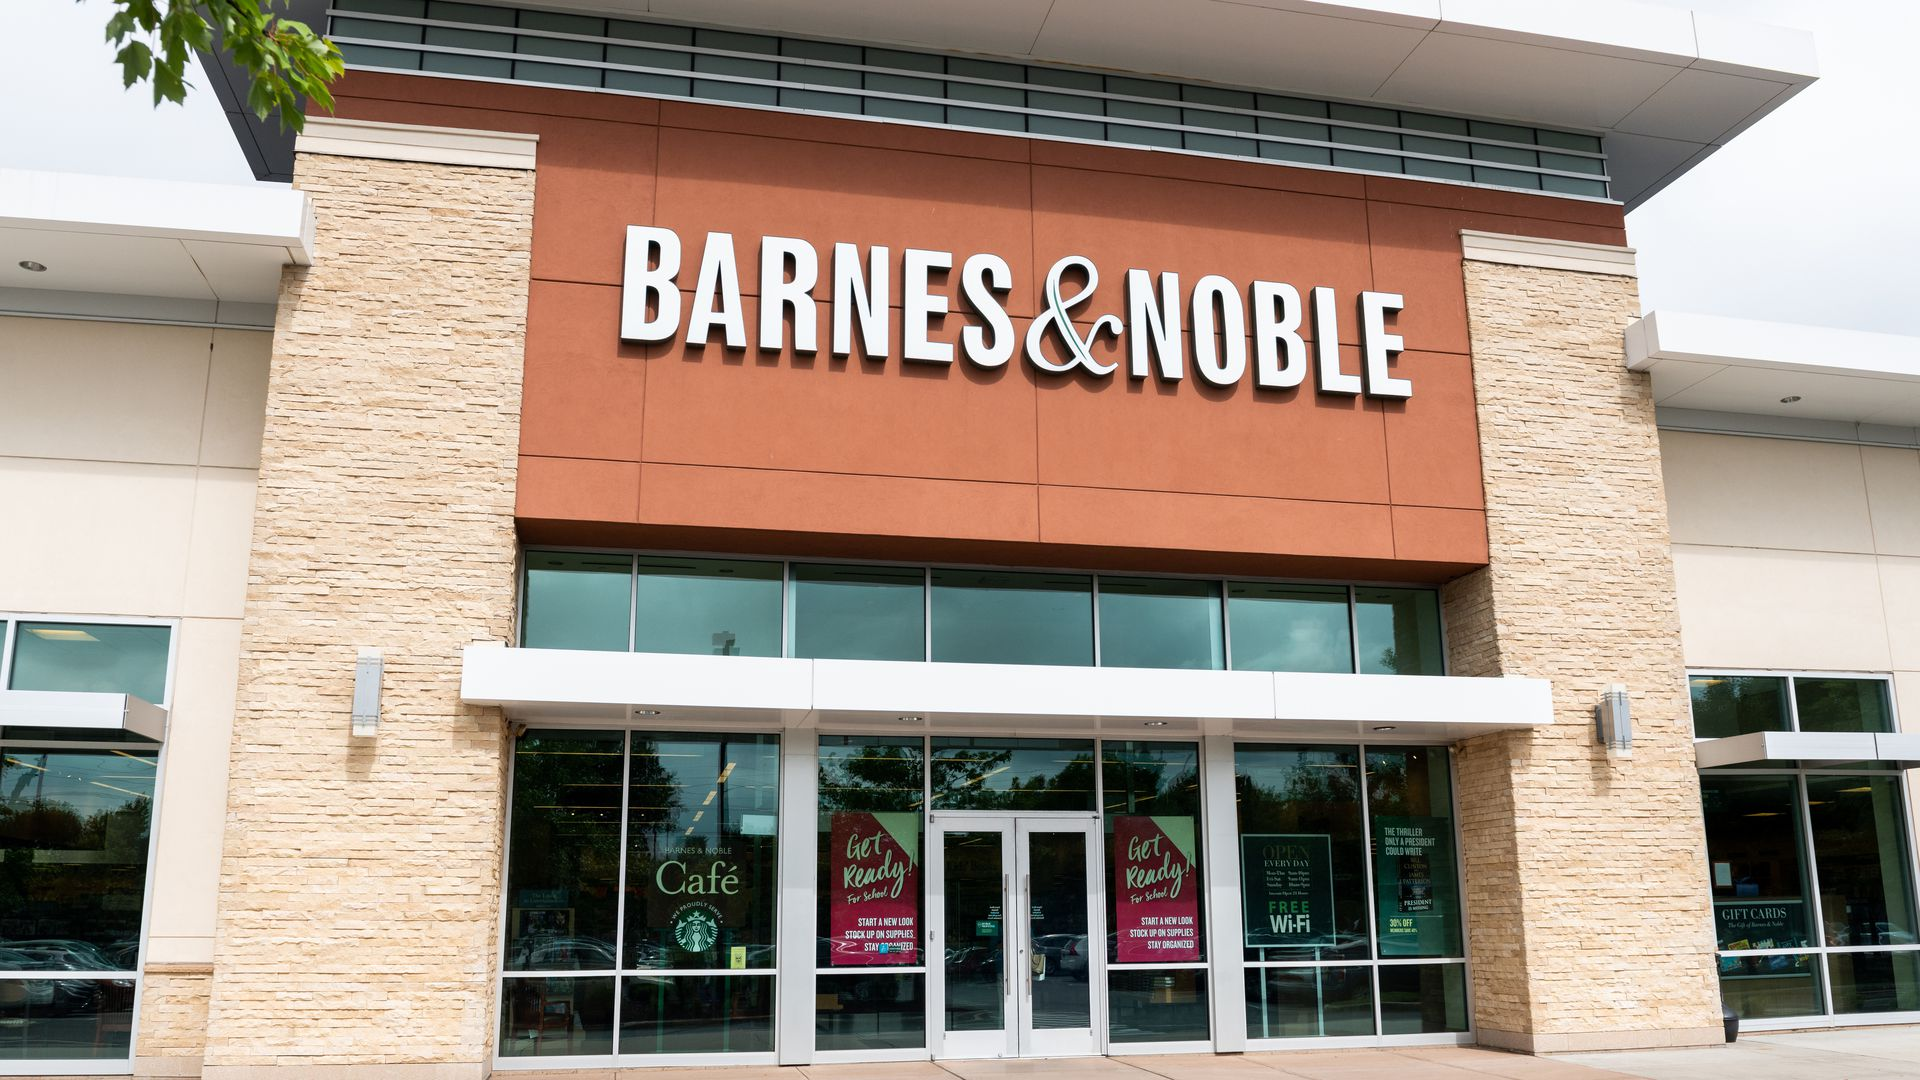 This is an image of a Barnes & Nobles storefront.